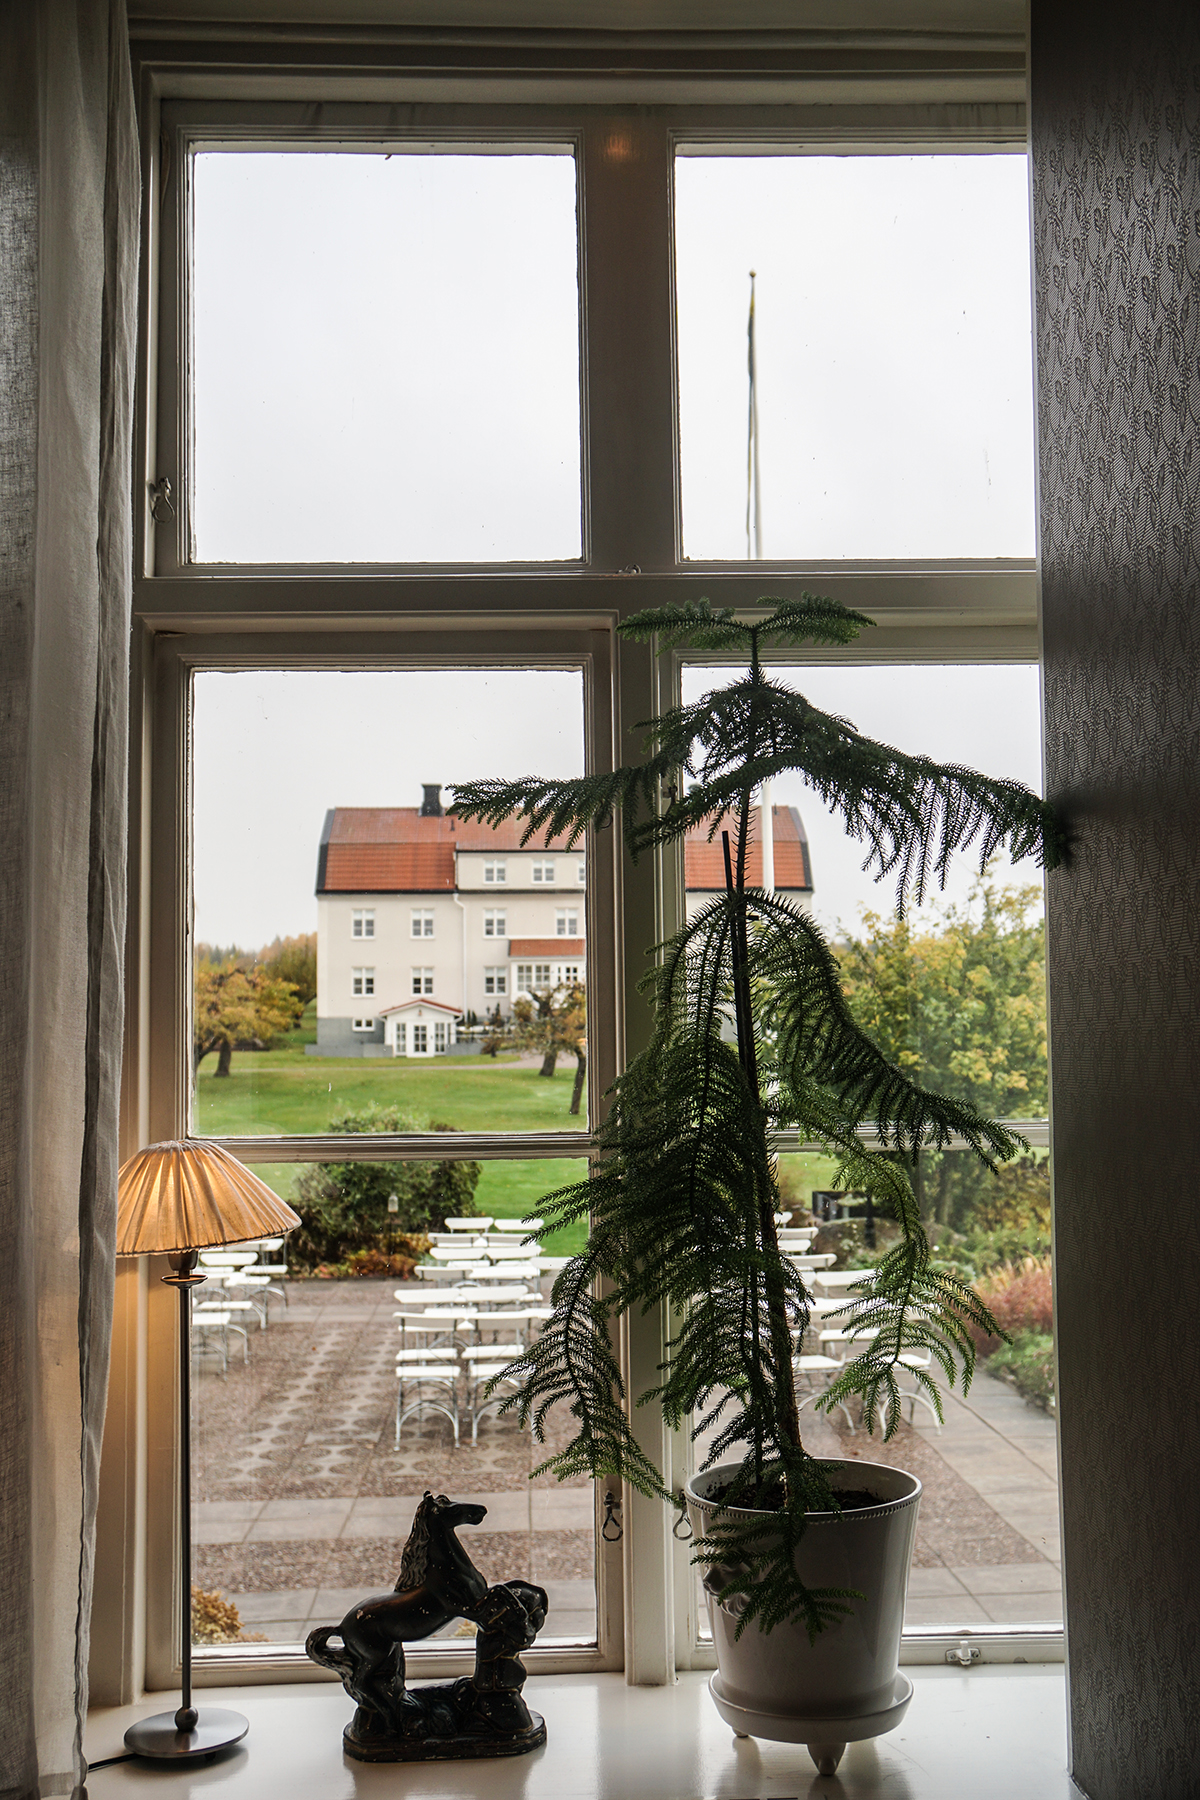 Båsenberga Countryside hotels